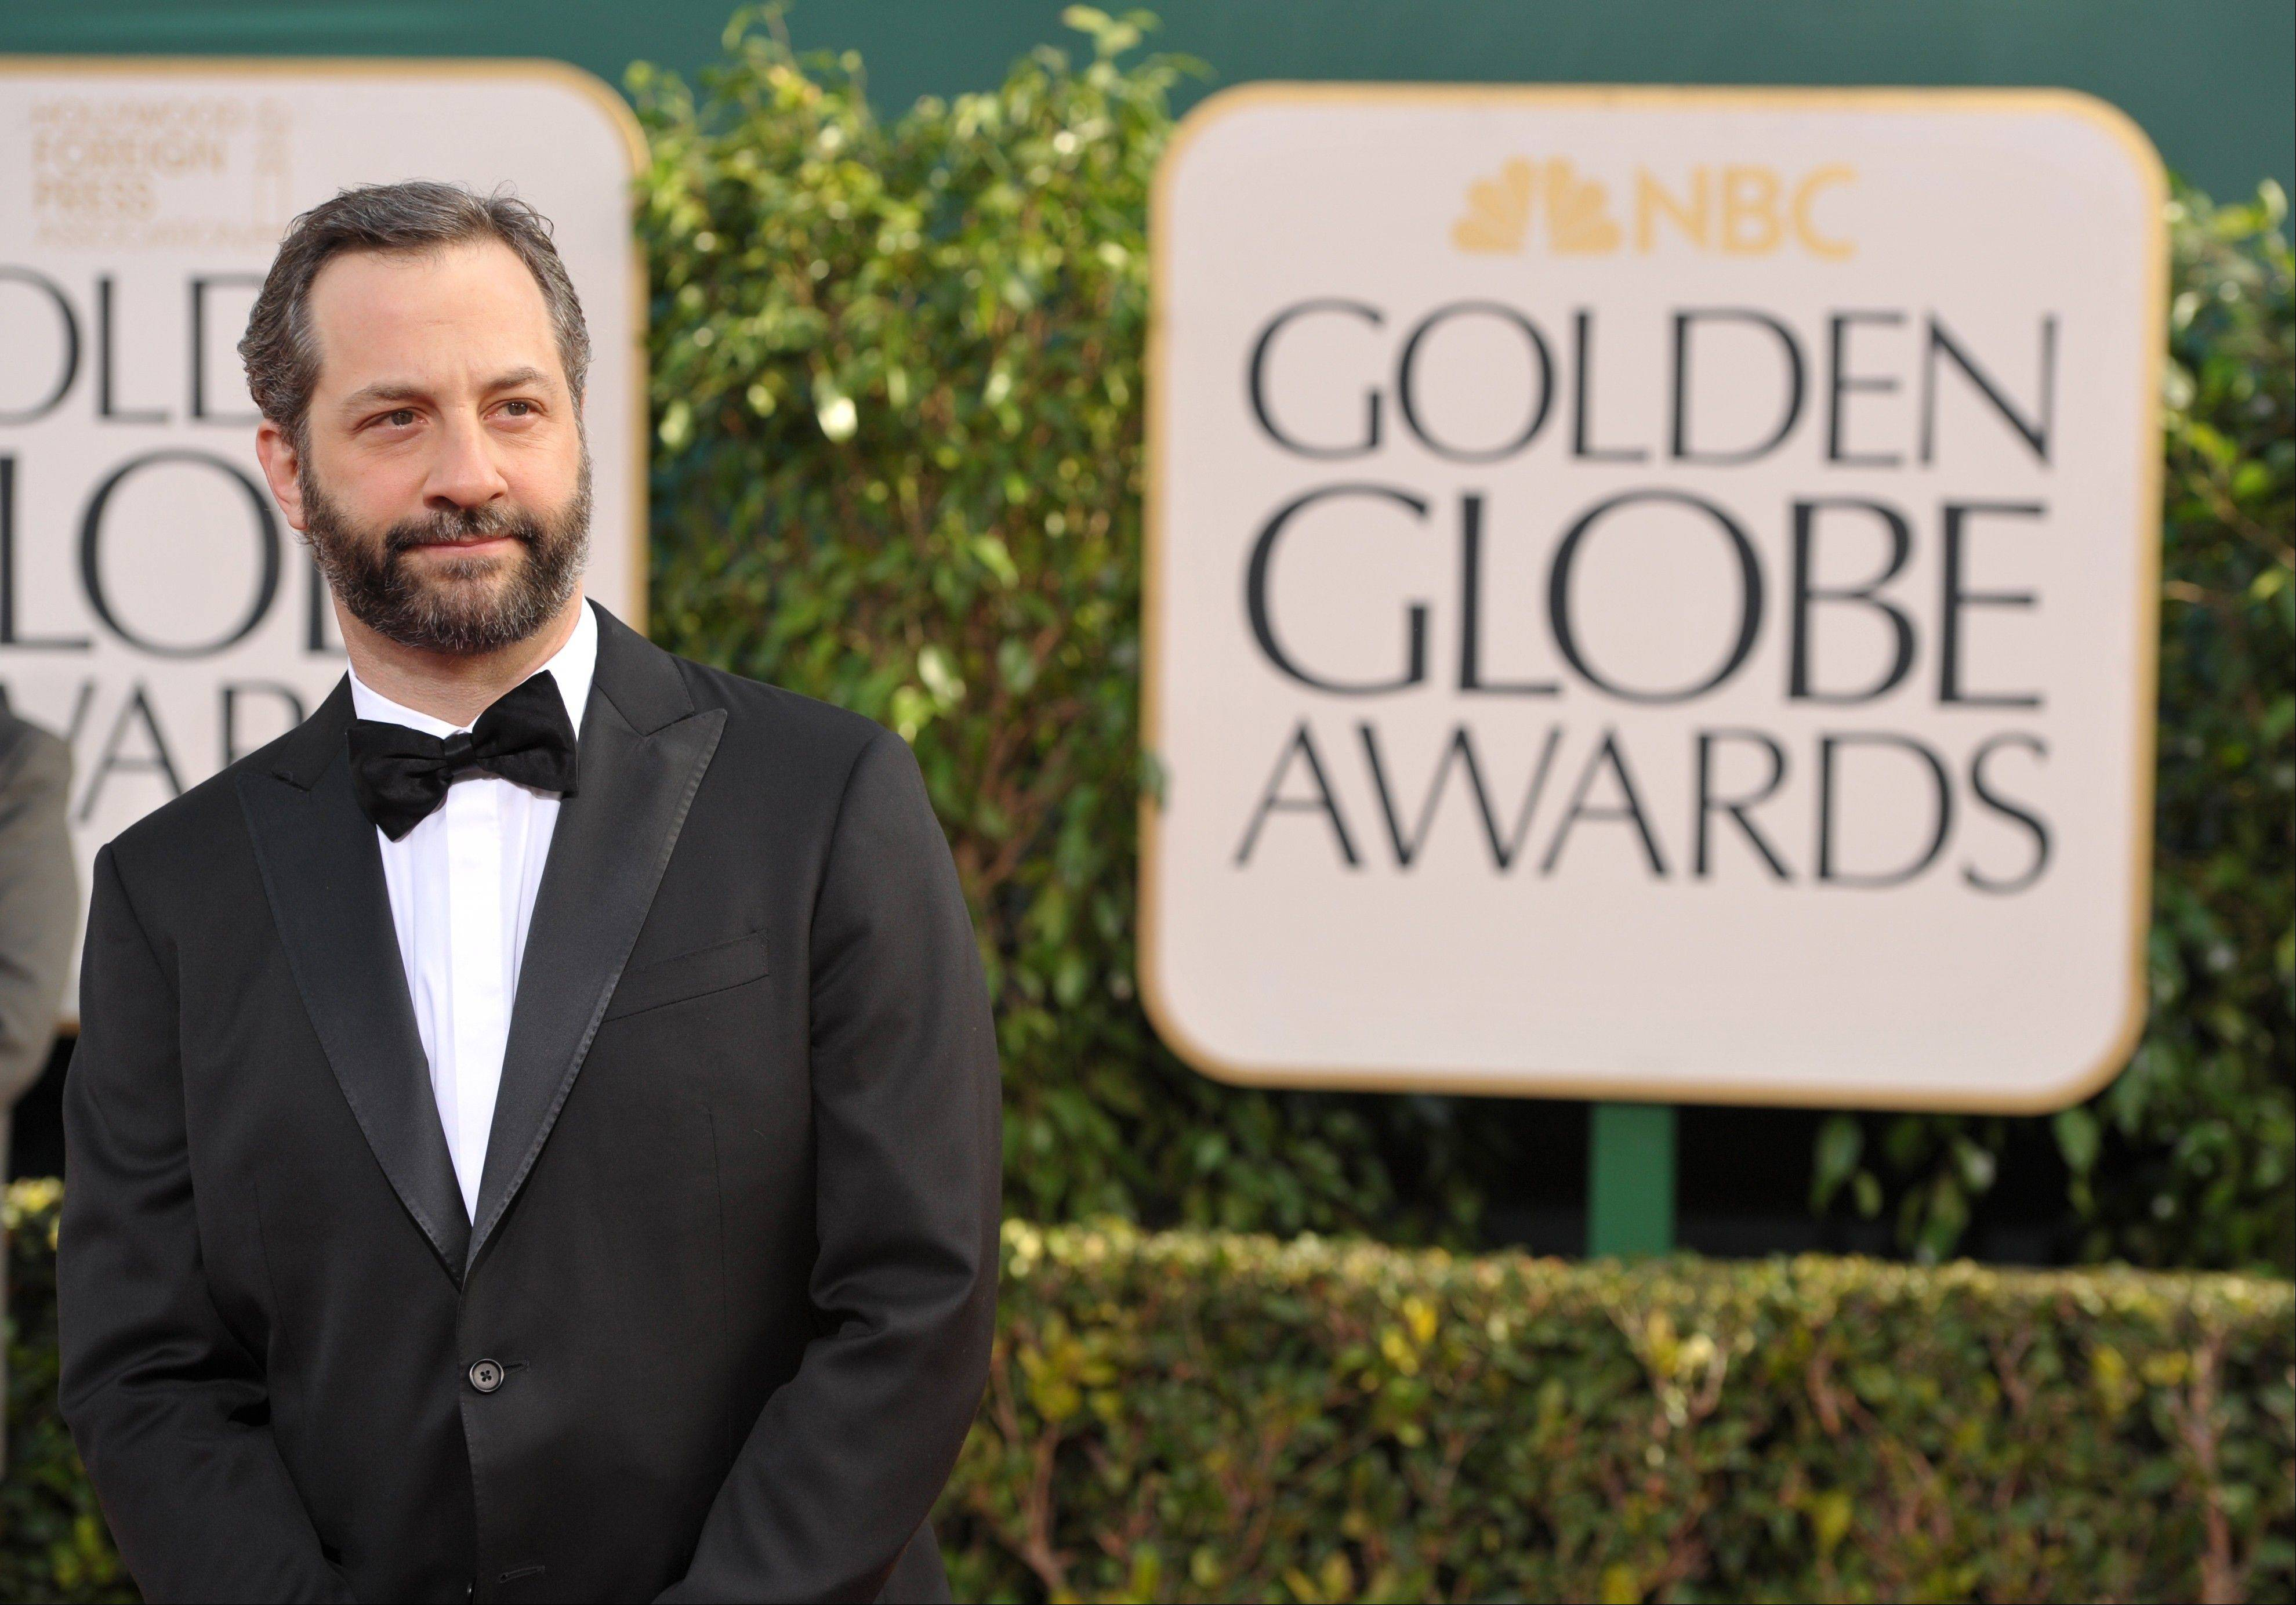 Writer/director Judd Apatow arrives at the 70th Annual Golden Globe Awards at the Beverly Hilton Hotel on Sunday Jan. 13, 2013, in Beverly Hills, Calif.